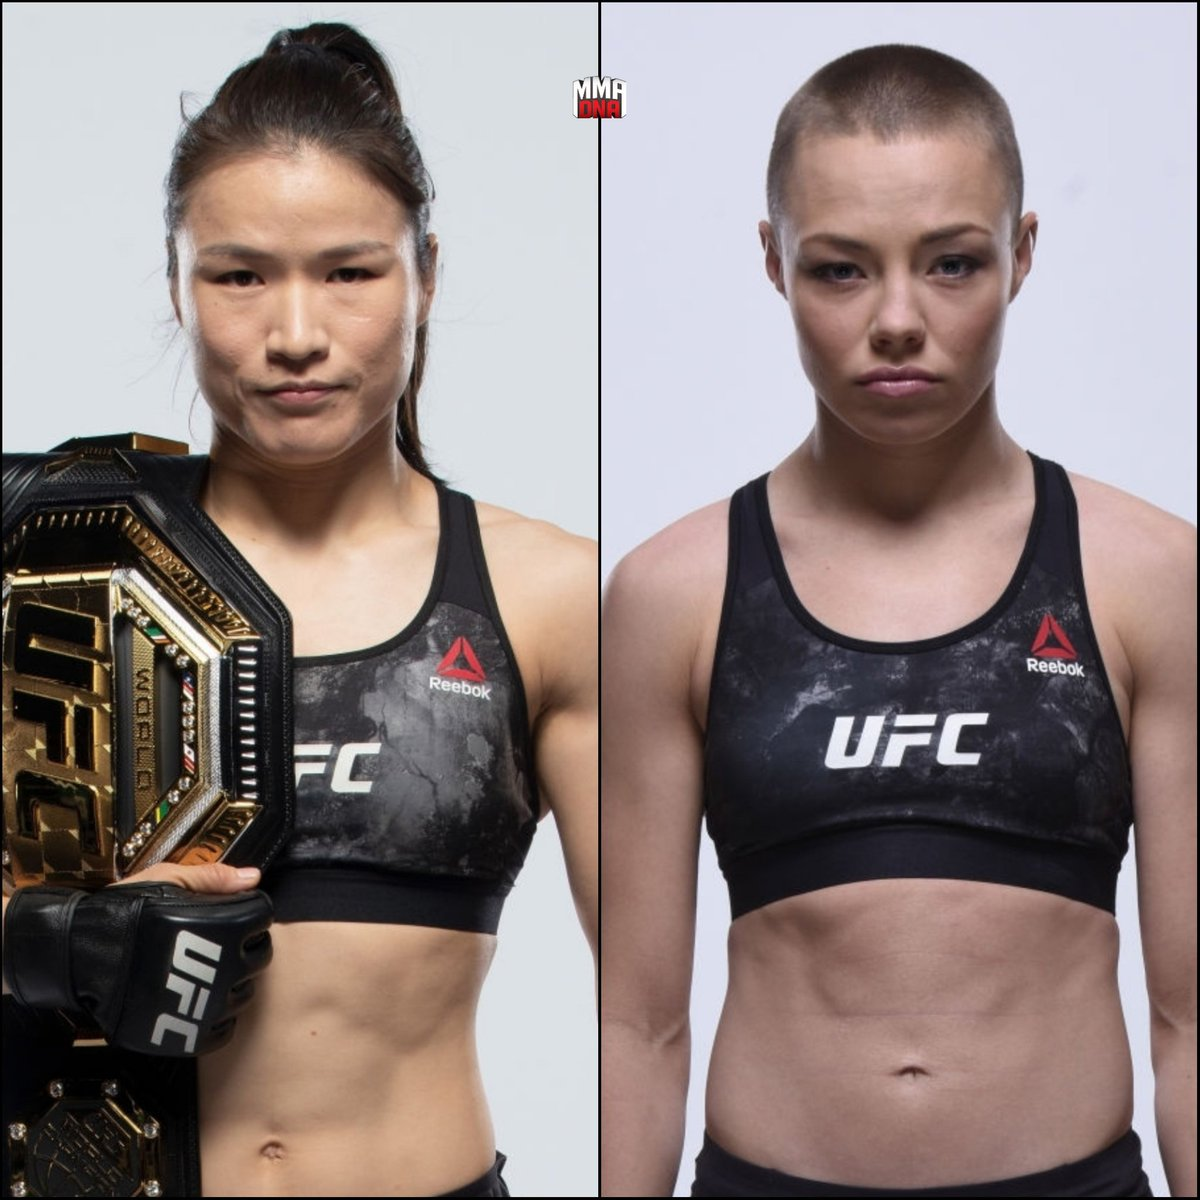 Champion Zhang Weili will fight Rose Namajunas at #UFC261 on April 24th. (first rep. @Belt_News) #UFC #MMA #UFCESPN #WSW🏆 #MainEvent